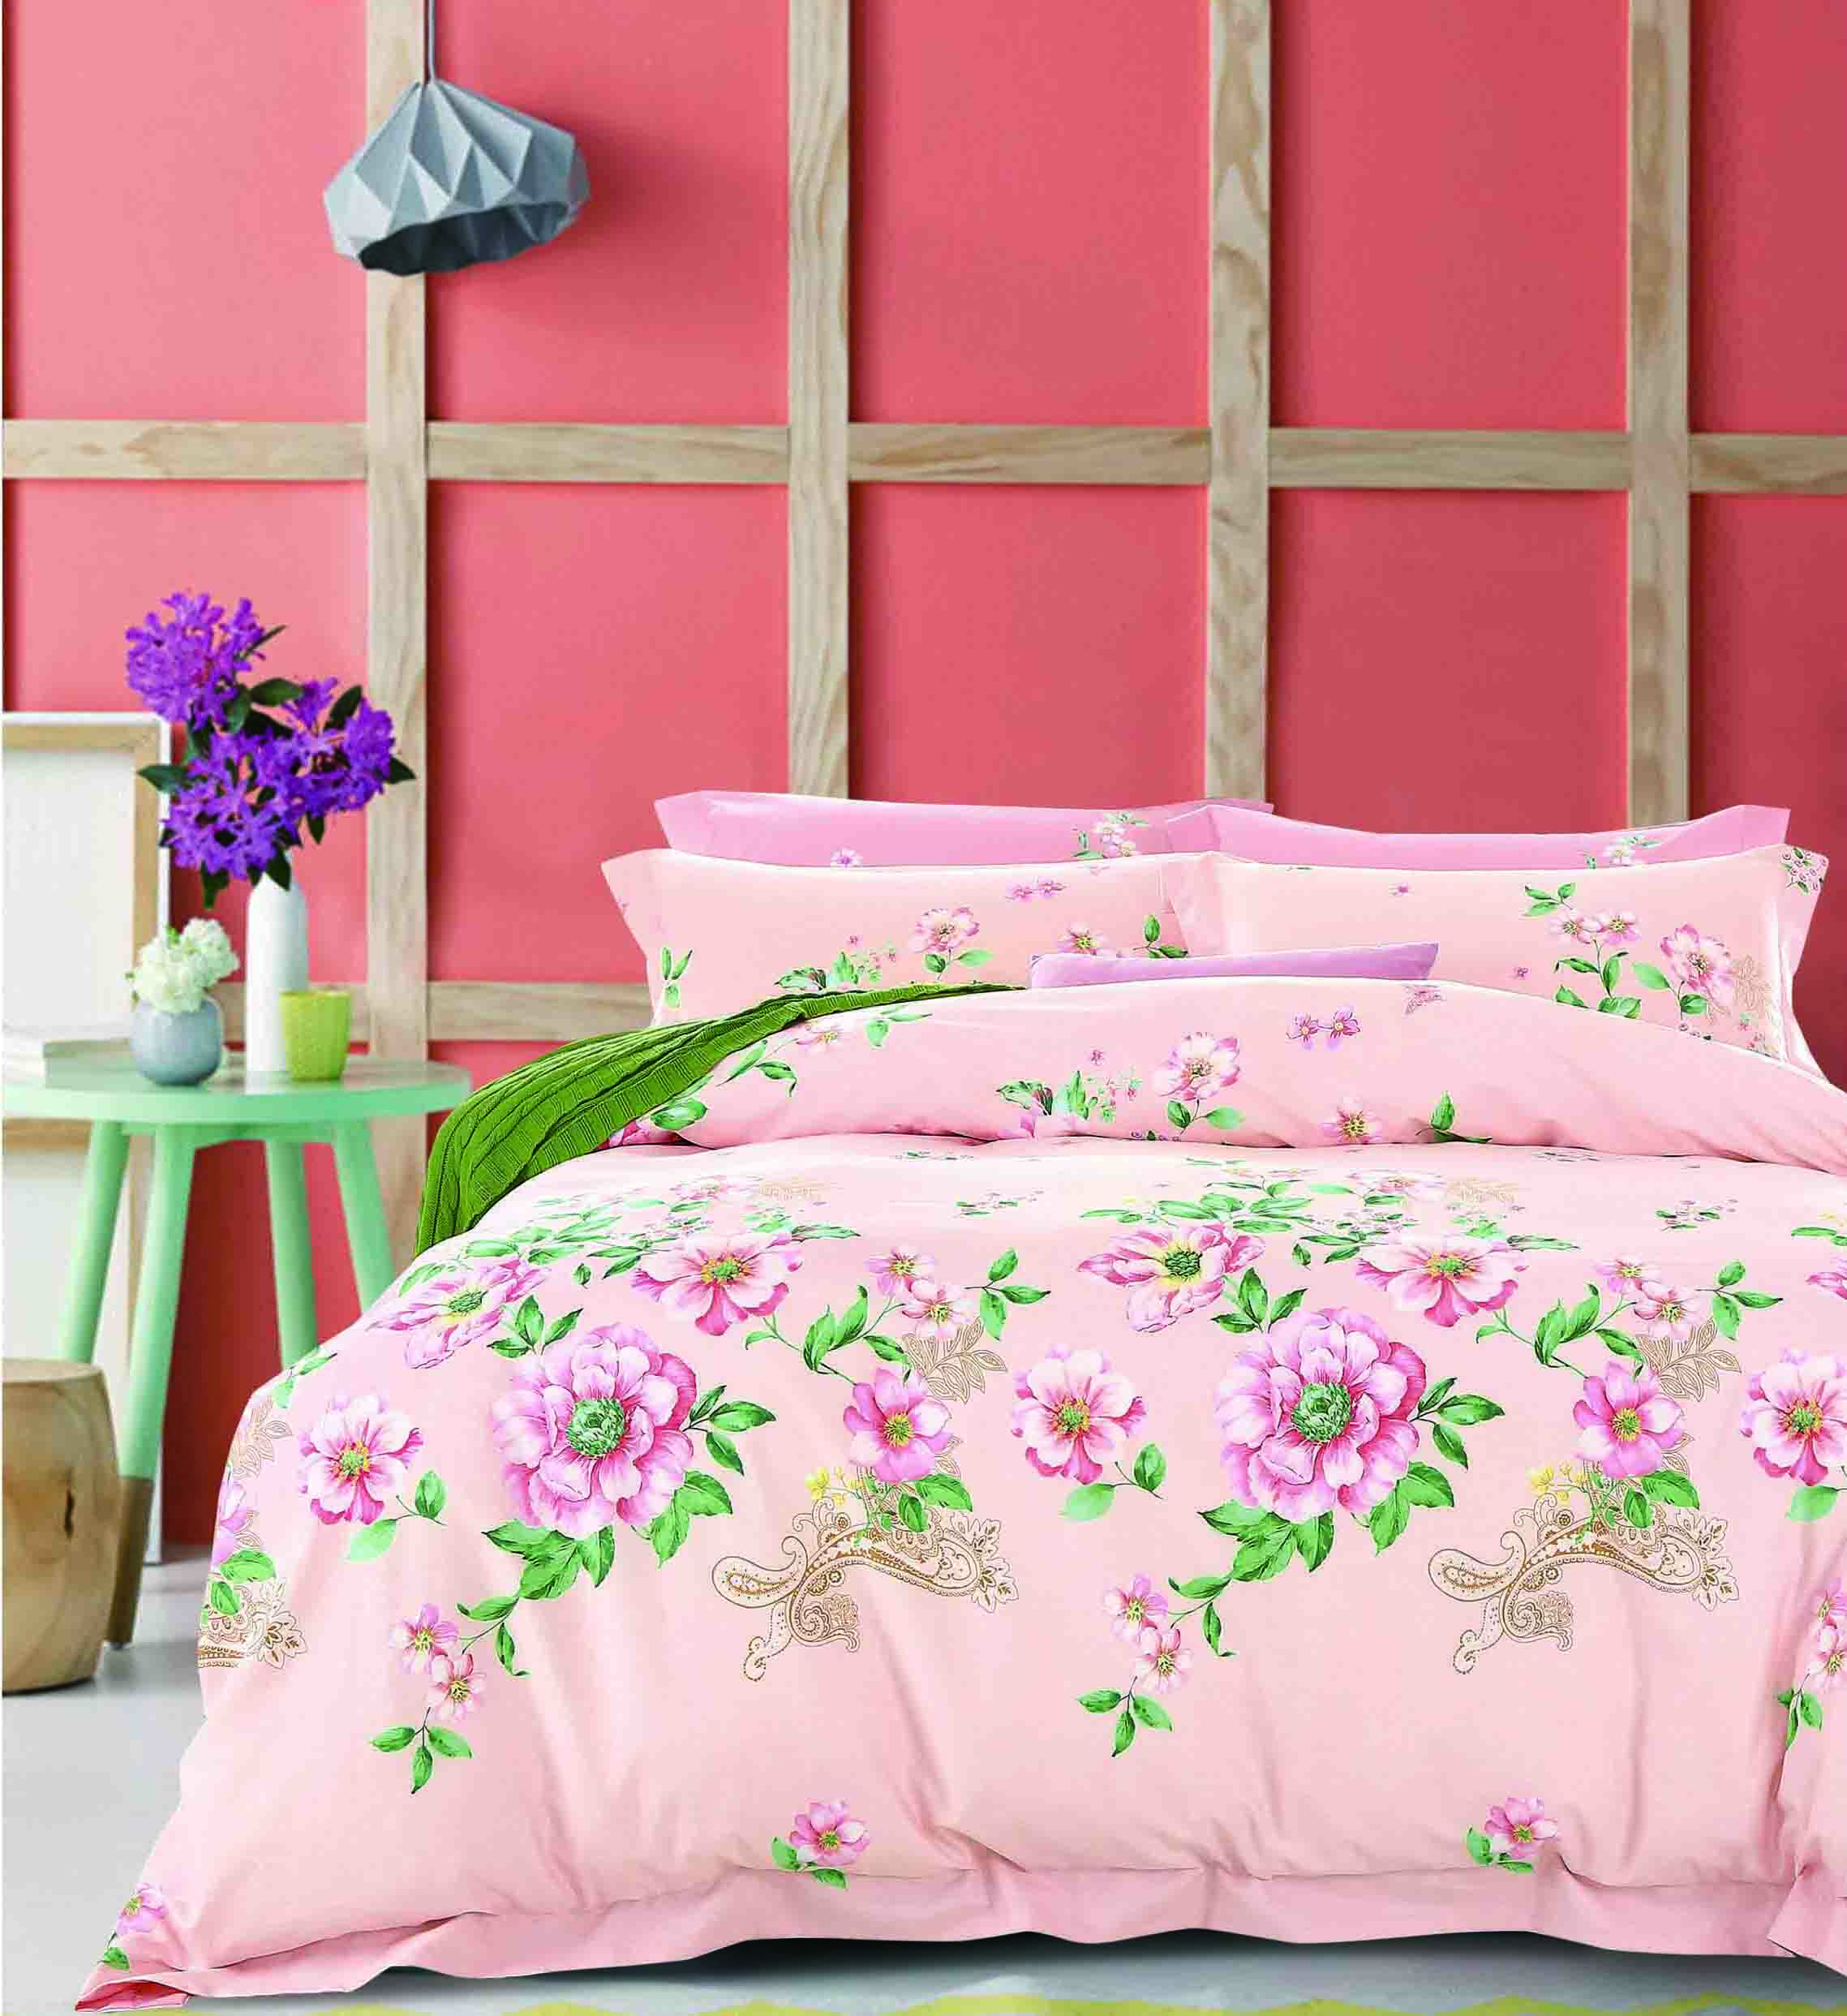 Vivid Floral Printed Bedding Set   #161444